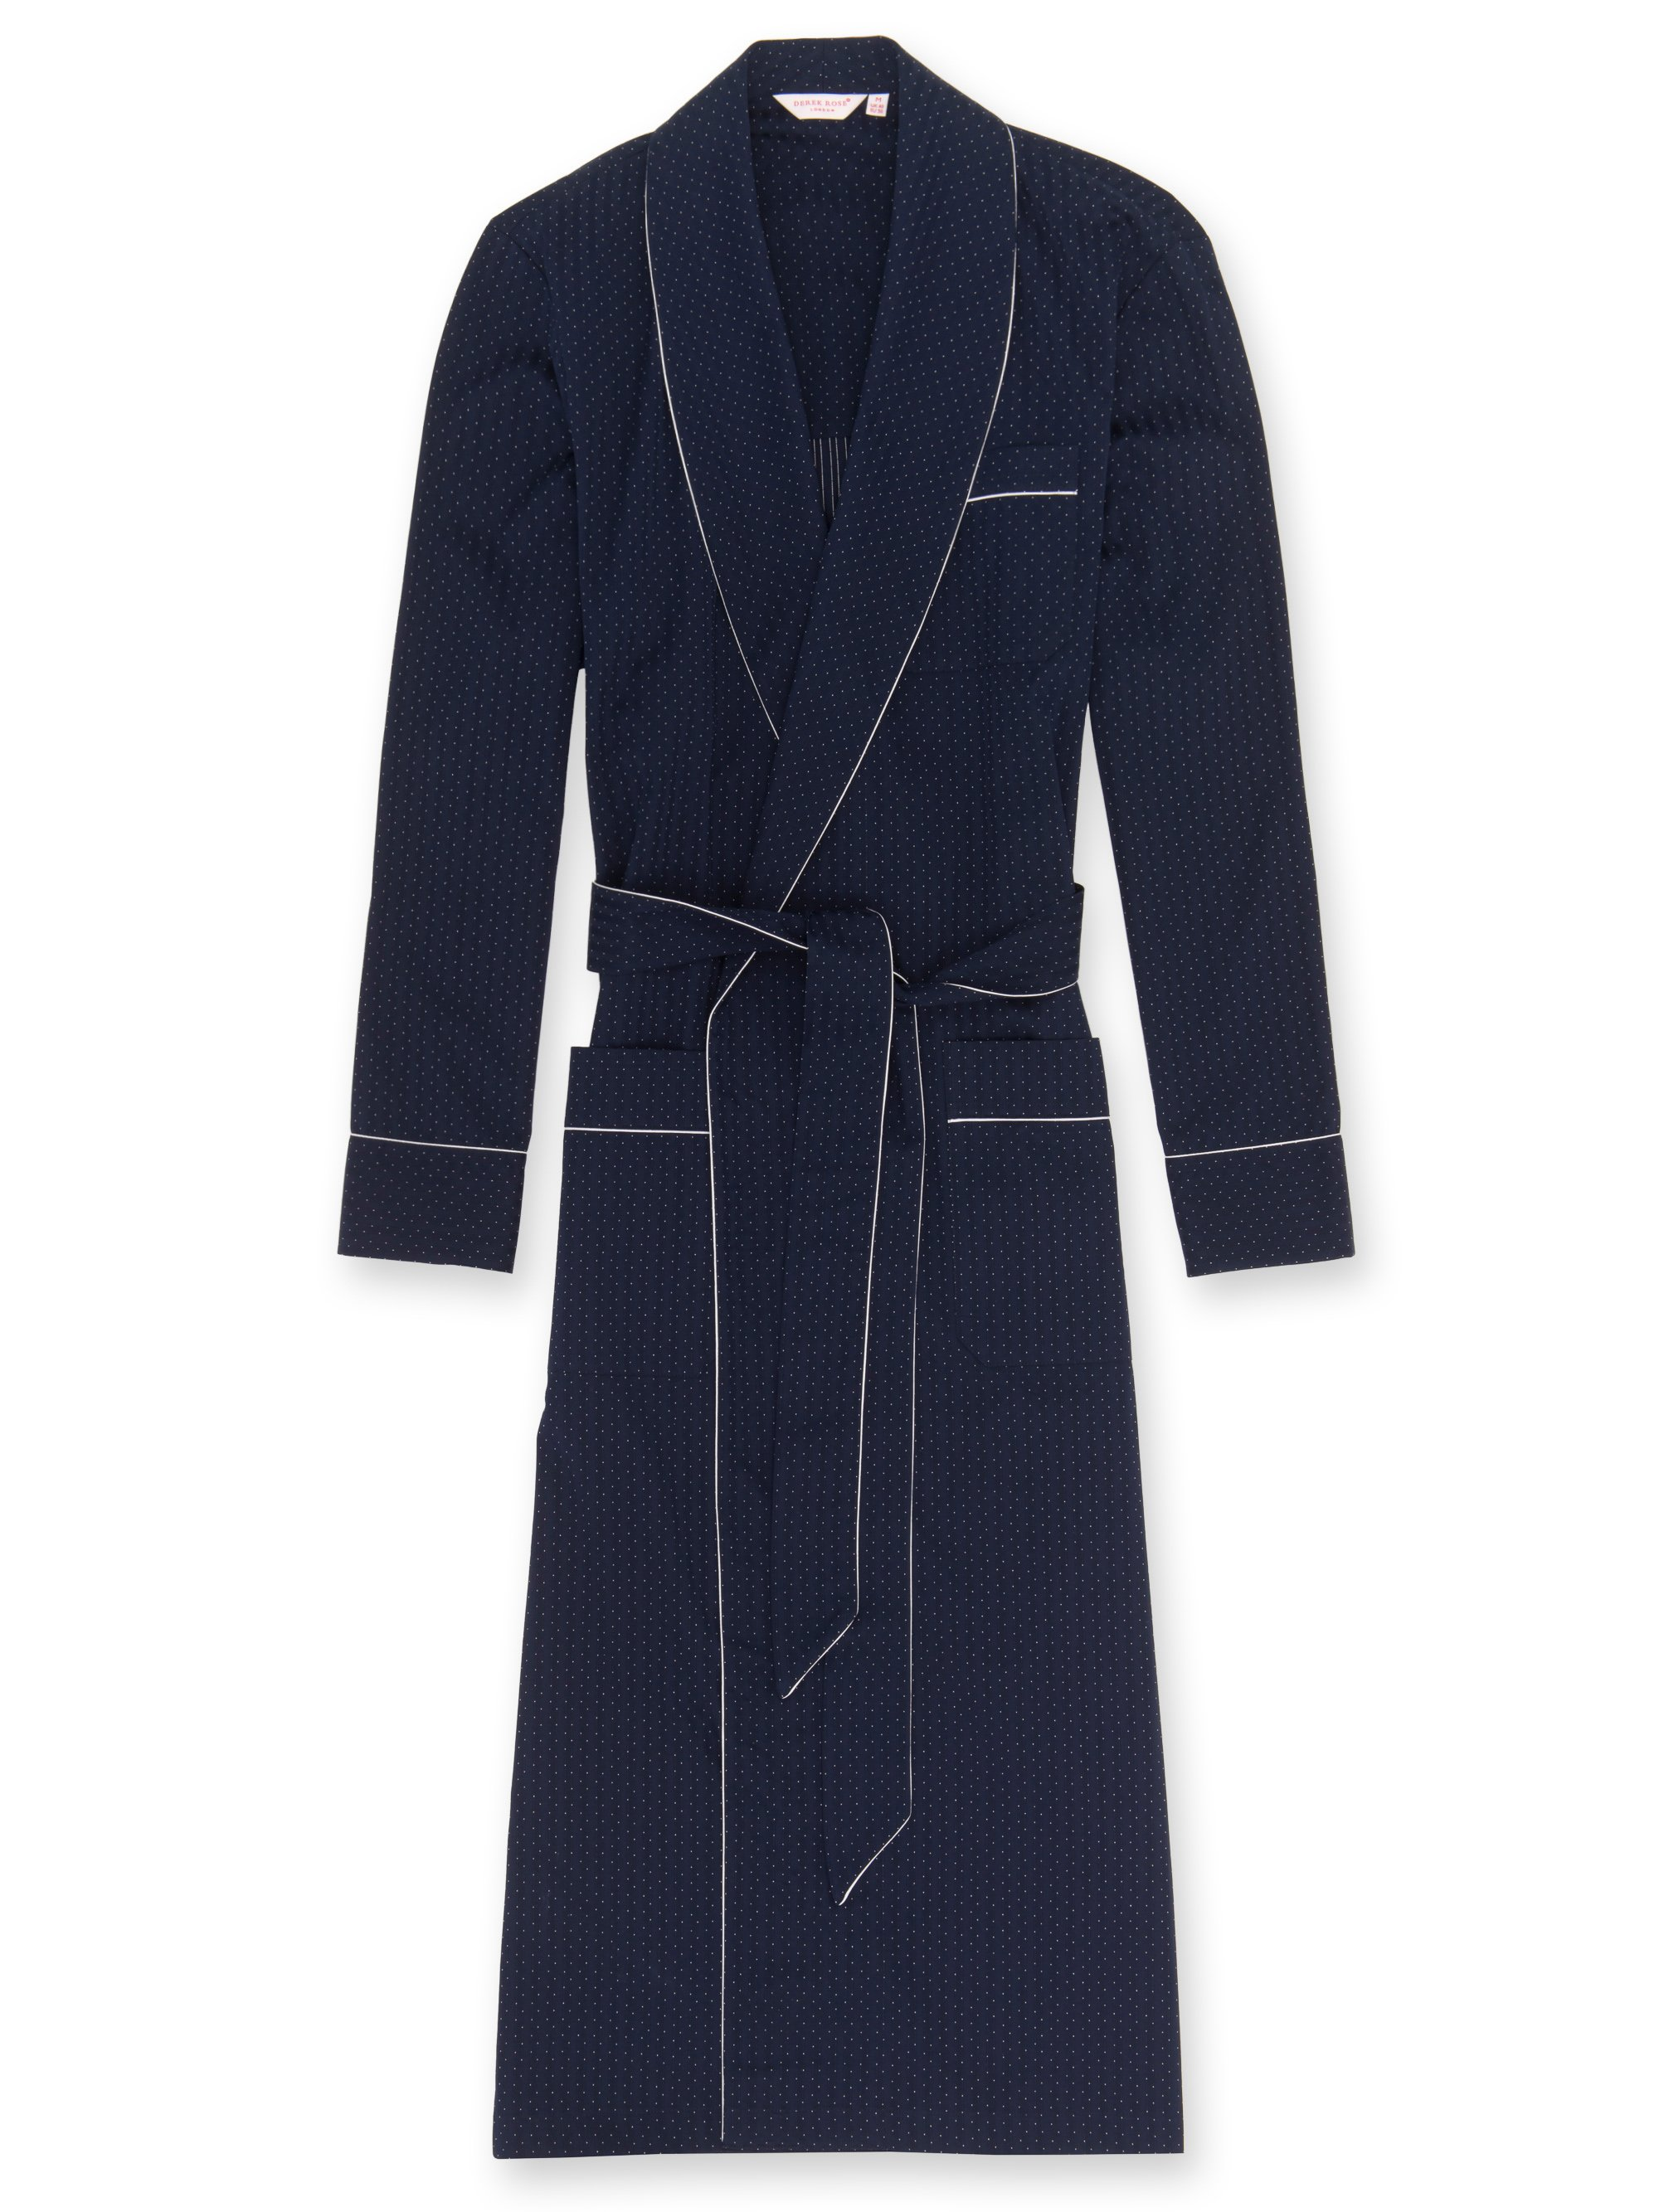 3886586ac9 Men s Piped Dressing Gown Royal 40 Cotton Satin Stripe Navy